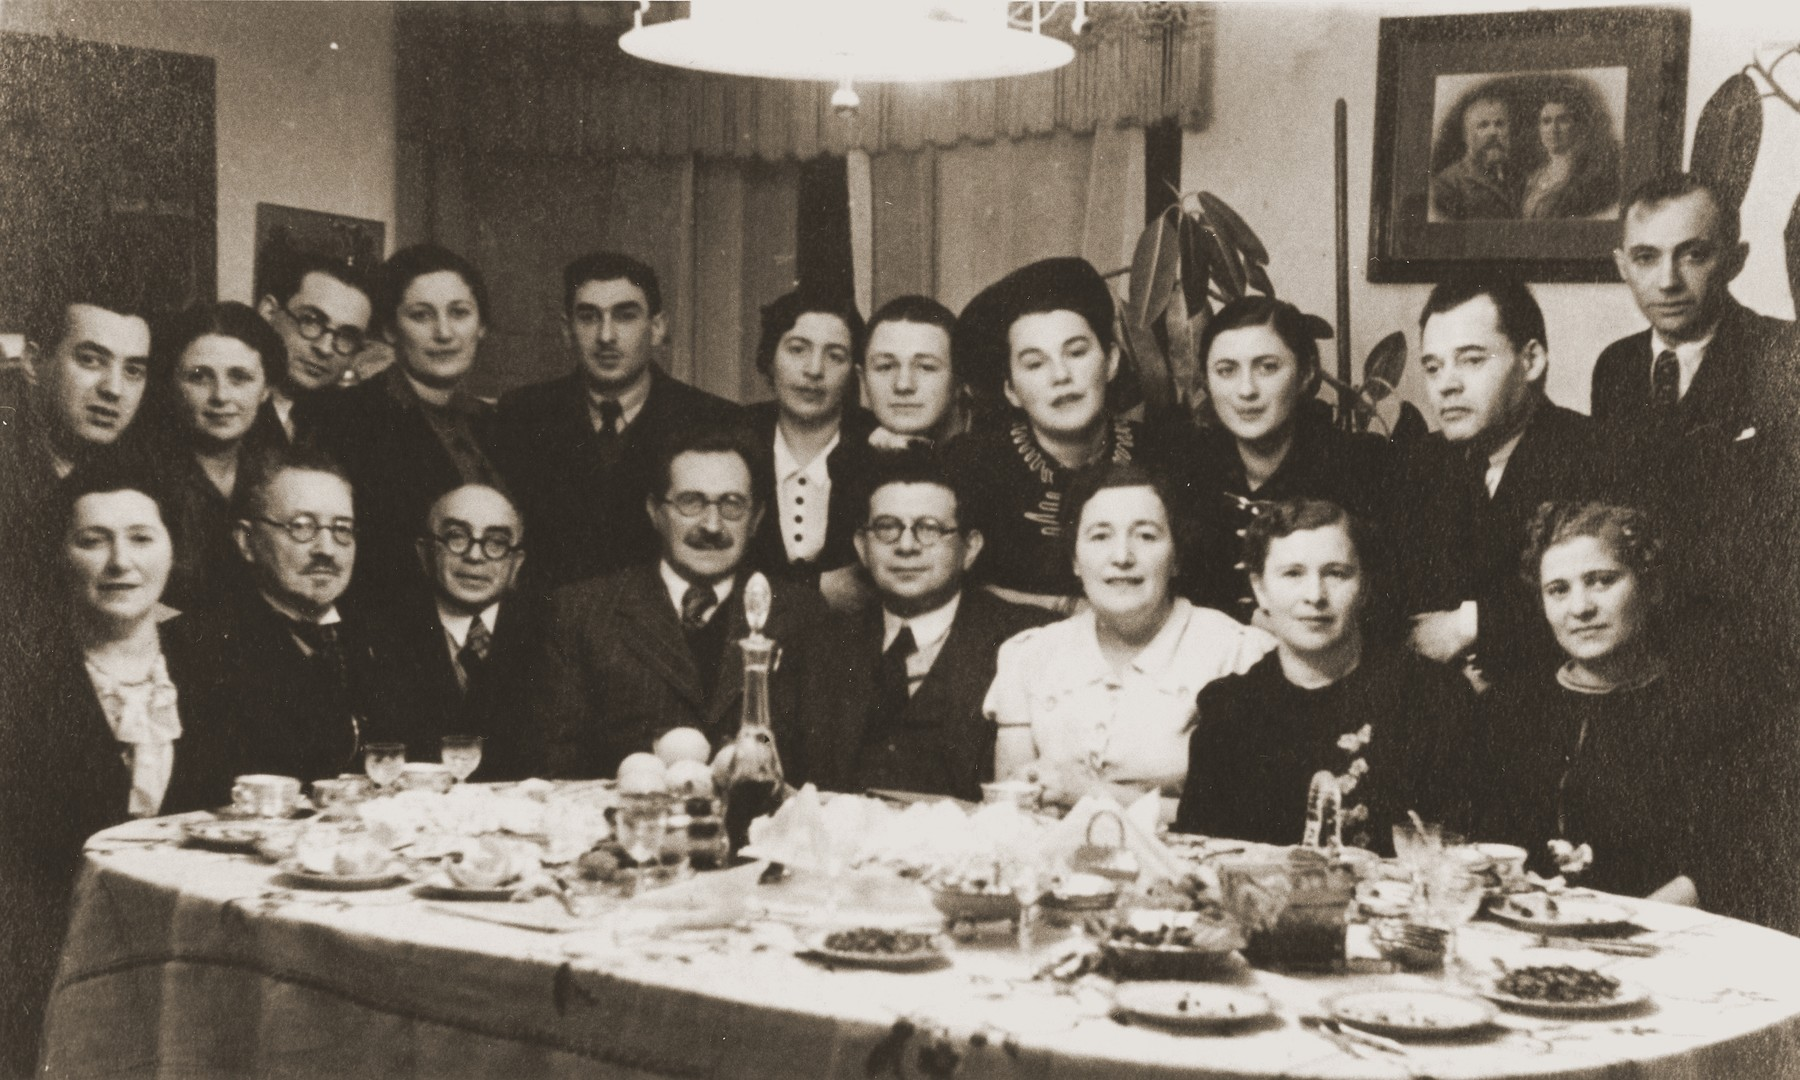 Dr. Aharon Pick hosts a dinner for the Jewish dramatist Nathan (Bistritski) Agmon, who is visiting from Palestine.  Dr. Pick is pictured seated, fourth from the left.  Haia Nudel (b.1928) is the daughter of Gitta and Leib Nudel of Siauliai, Lithuania, where Leib worked at the railway station.  Haia had two brothers, Mordechai (b.1930) and Yaakov (b.1933).  Soon after the German occupation of the city in the summer of 1941, Haia's father was killed.  The rest of the family was forced into the ghetto.  When her brother, Mordechai, attempted to escape, he was shot and killed.  The remainder of the family stayed in the ghetto until its liquidation in the summer of 1944.  At that time they were all deported to the Stutthof concentration camp.  Only Haia survived.  After the war, Haia made her way to Germany, where she lived for a time in the Foehrenwald DP camp.  In the fall of 1946, she joined a group of would-be immigrants to Palestine who attempted to run the British blockade aboard the Latrun.  The ship, however, was intercepted and its passengers deported to Cyprus.  Haia spent nine months in Cyprus detention camps before being allowed to enter Palestine in May, 1947.  David Pick (b.1922) is the son of Deborah Tatz and Dr. Aharon Pick of Siauliai, Lithuania.  In addition to his medical practice, David's father was active in Jewish cultural life.  The family hosted many visiting Jewish cultural figures.  During the war David's father succumbed to illness while living in the Siauliai ghetto.  His mother survived the ghetto but perished in the Stutthof concentration camp.  David managed to flee the ghetto shortly before its liquidation.  He was hidden by a Lithuanian priest for three weeks before the area was liberated.  After the war David became a guide for the Bricha, leading groups of Jewish survivors on routes to the west.  David immigrated to Palestine in 1948.  There, he met Haia Nudel and the two were married in 1949.